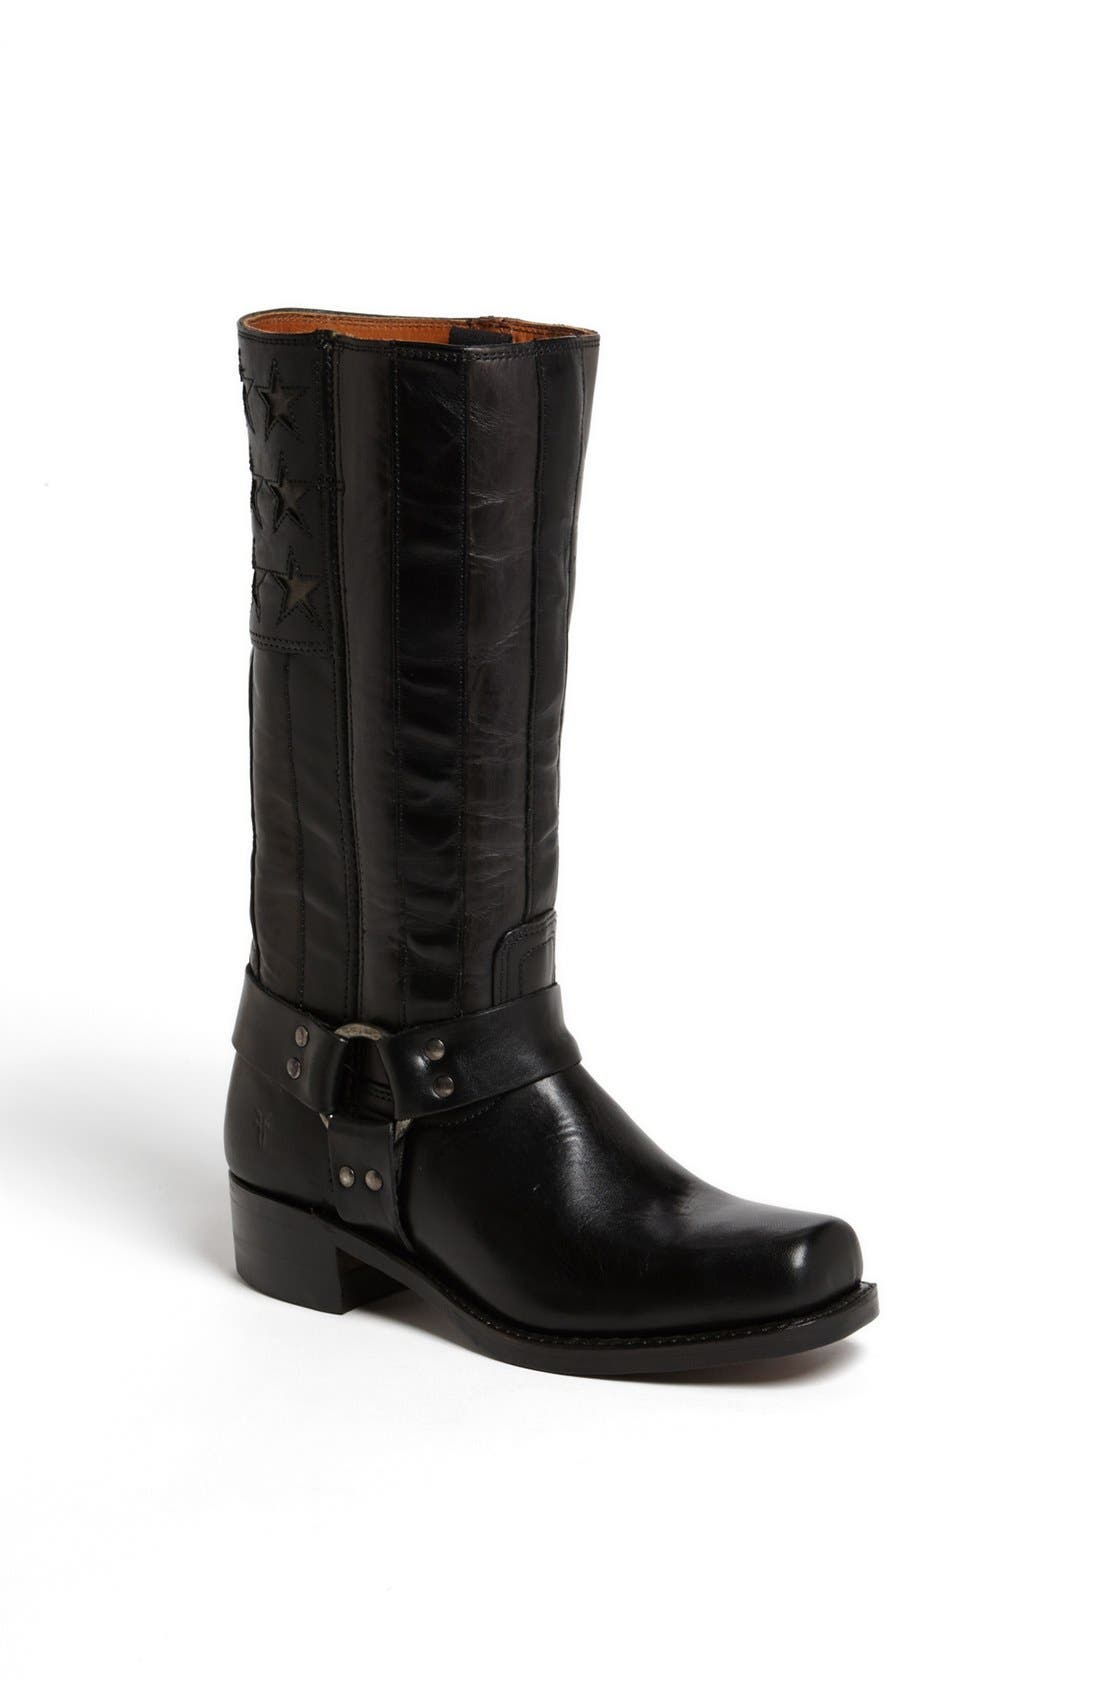 Alternate Image 1 Selected - Frye 'Americana' Harness Boot (Limited Edition)